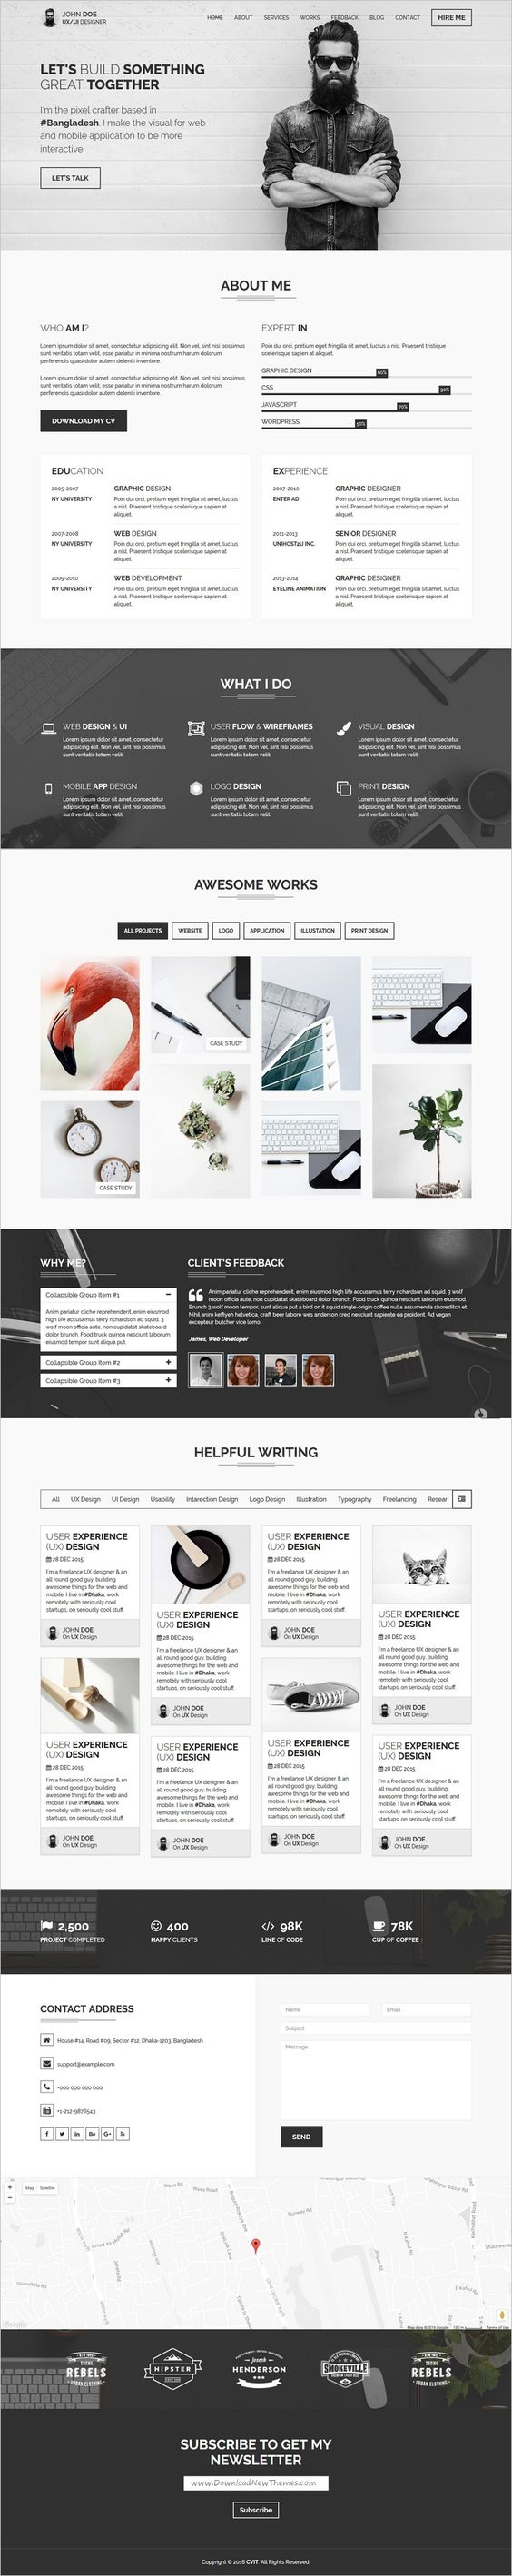 cvit multipurpose personal portfolio vcard cv resume cvit is a multipurpose personal portfolio vcard cv resume template designed for all kinds of personal purpose